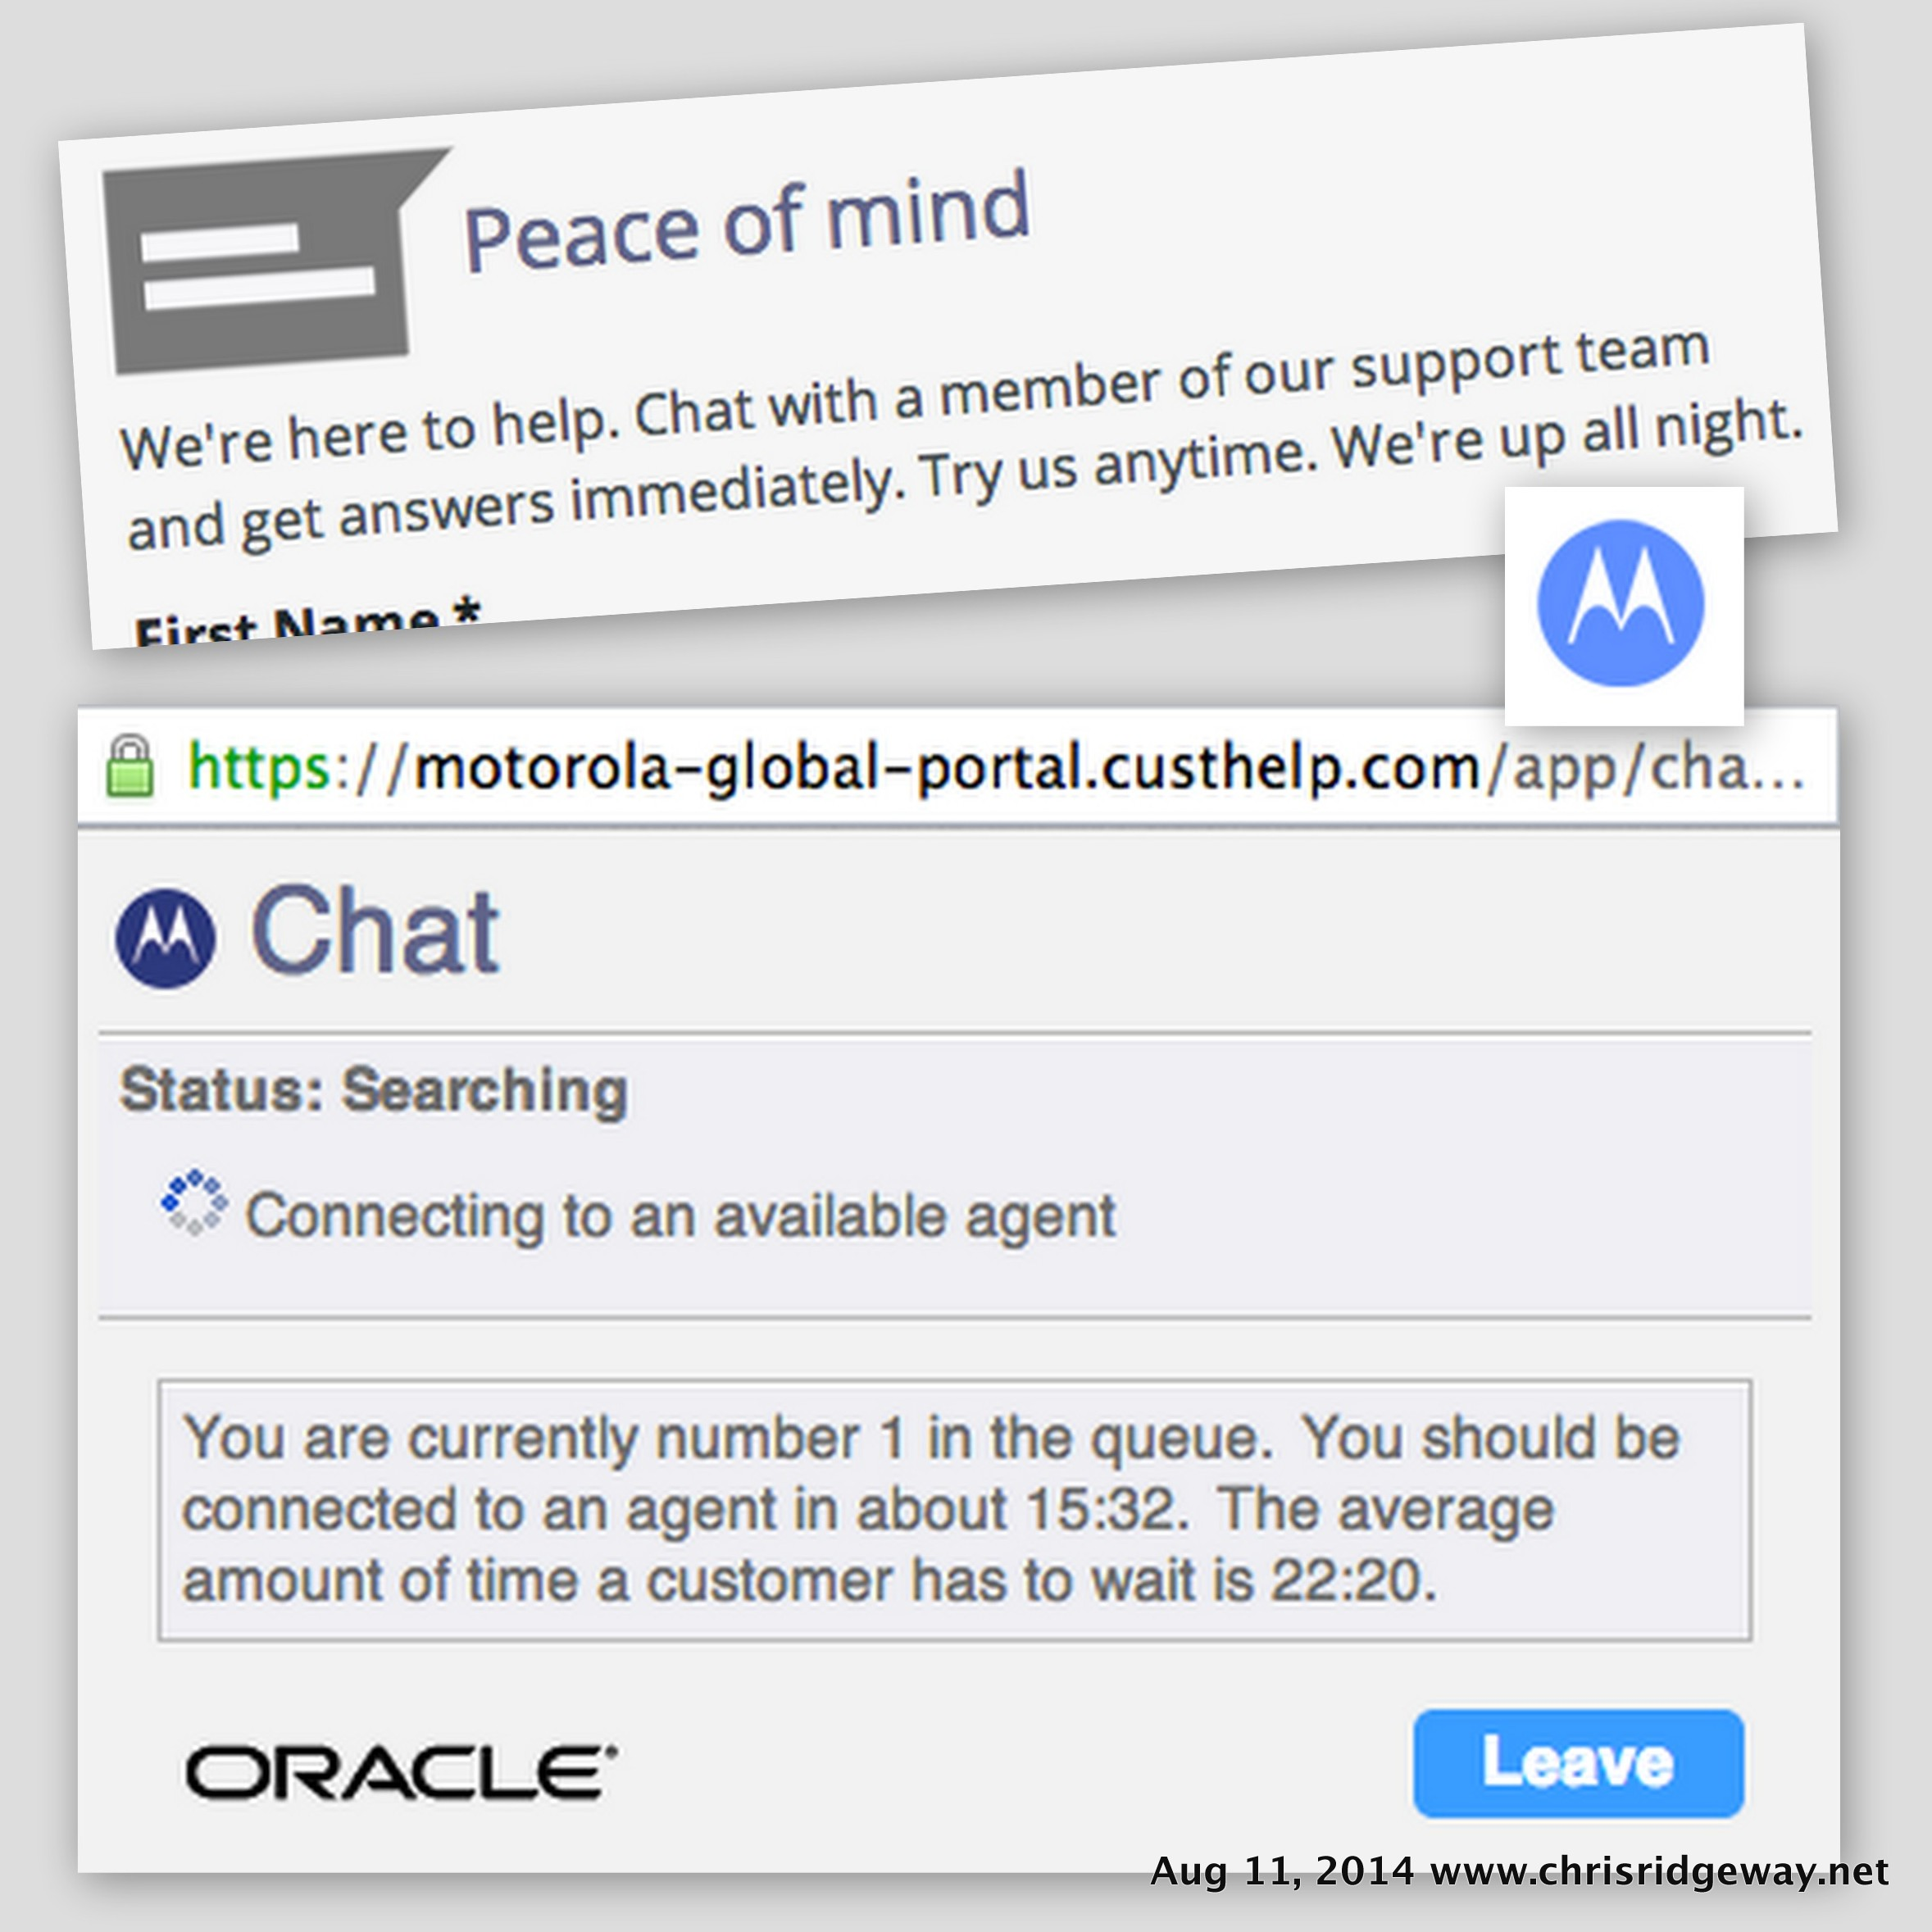 Screenshots of motorola support website chat.